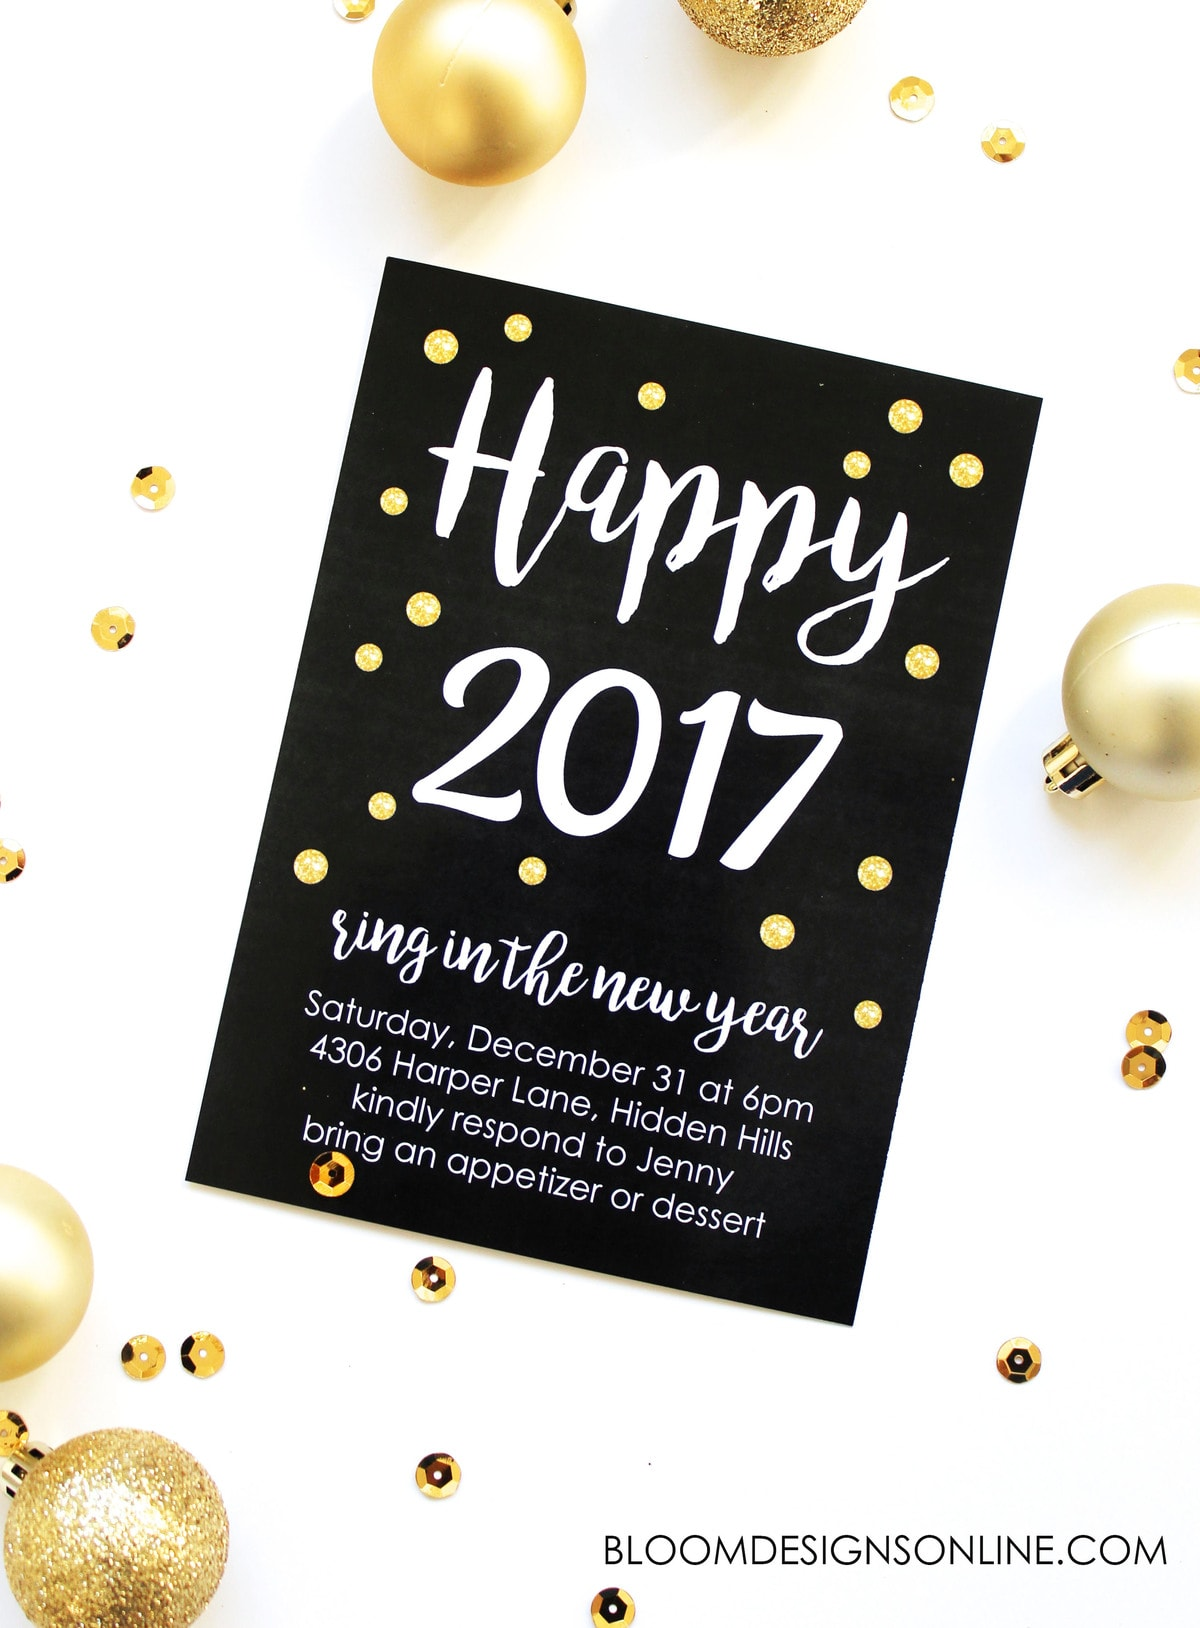 A great party starts with a great invitation! Use this Editable New Year's Invitation to help plan your amazing party. Just download and edit!